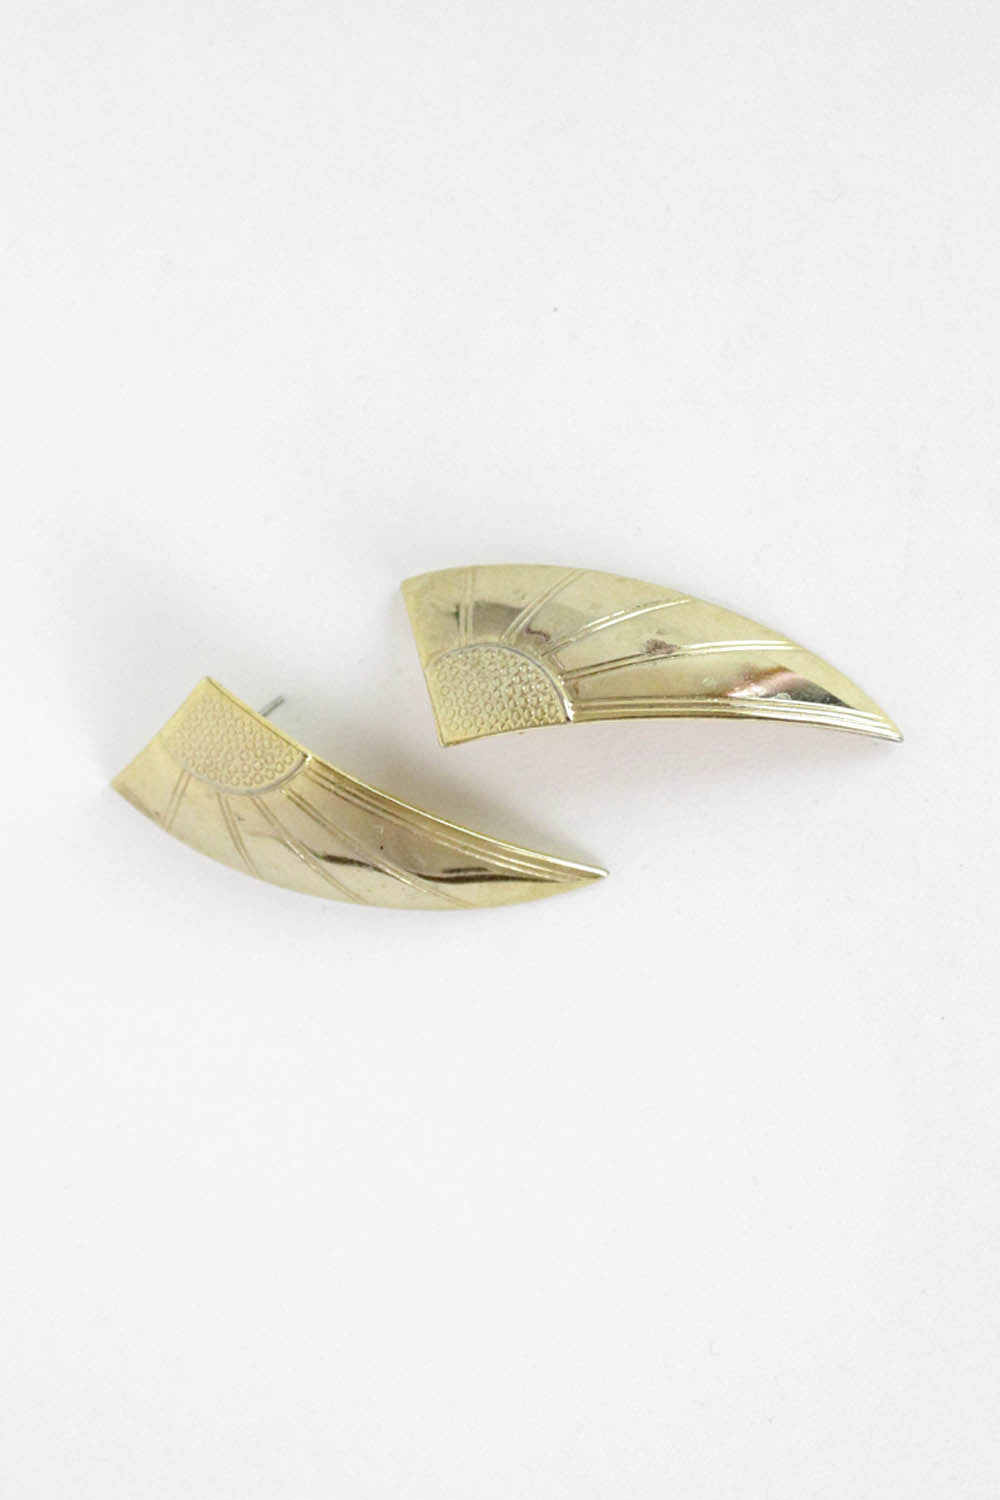 Wings of Isis Earrings